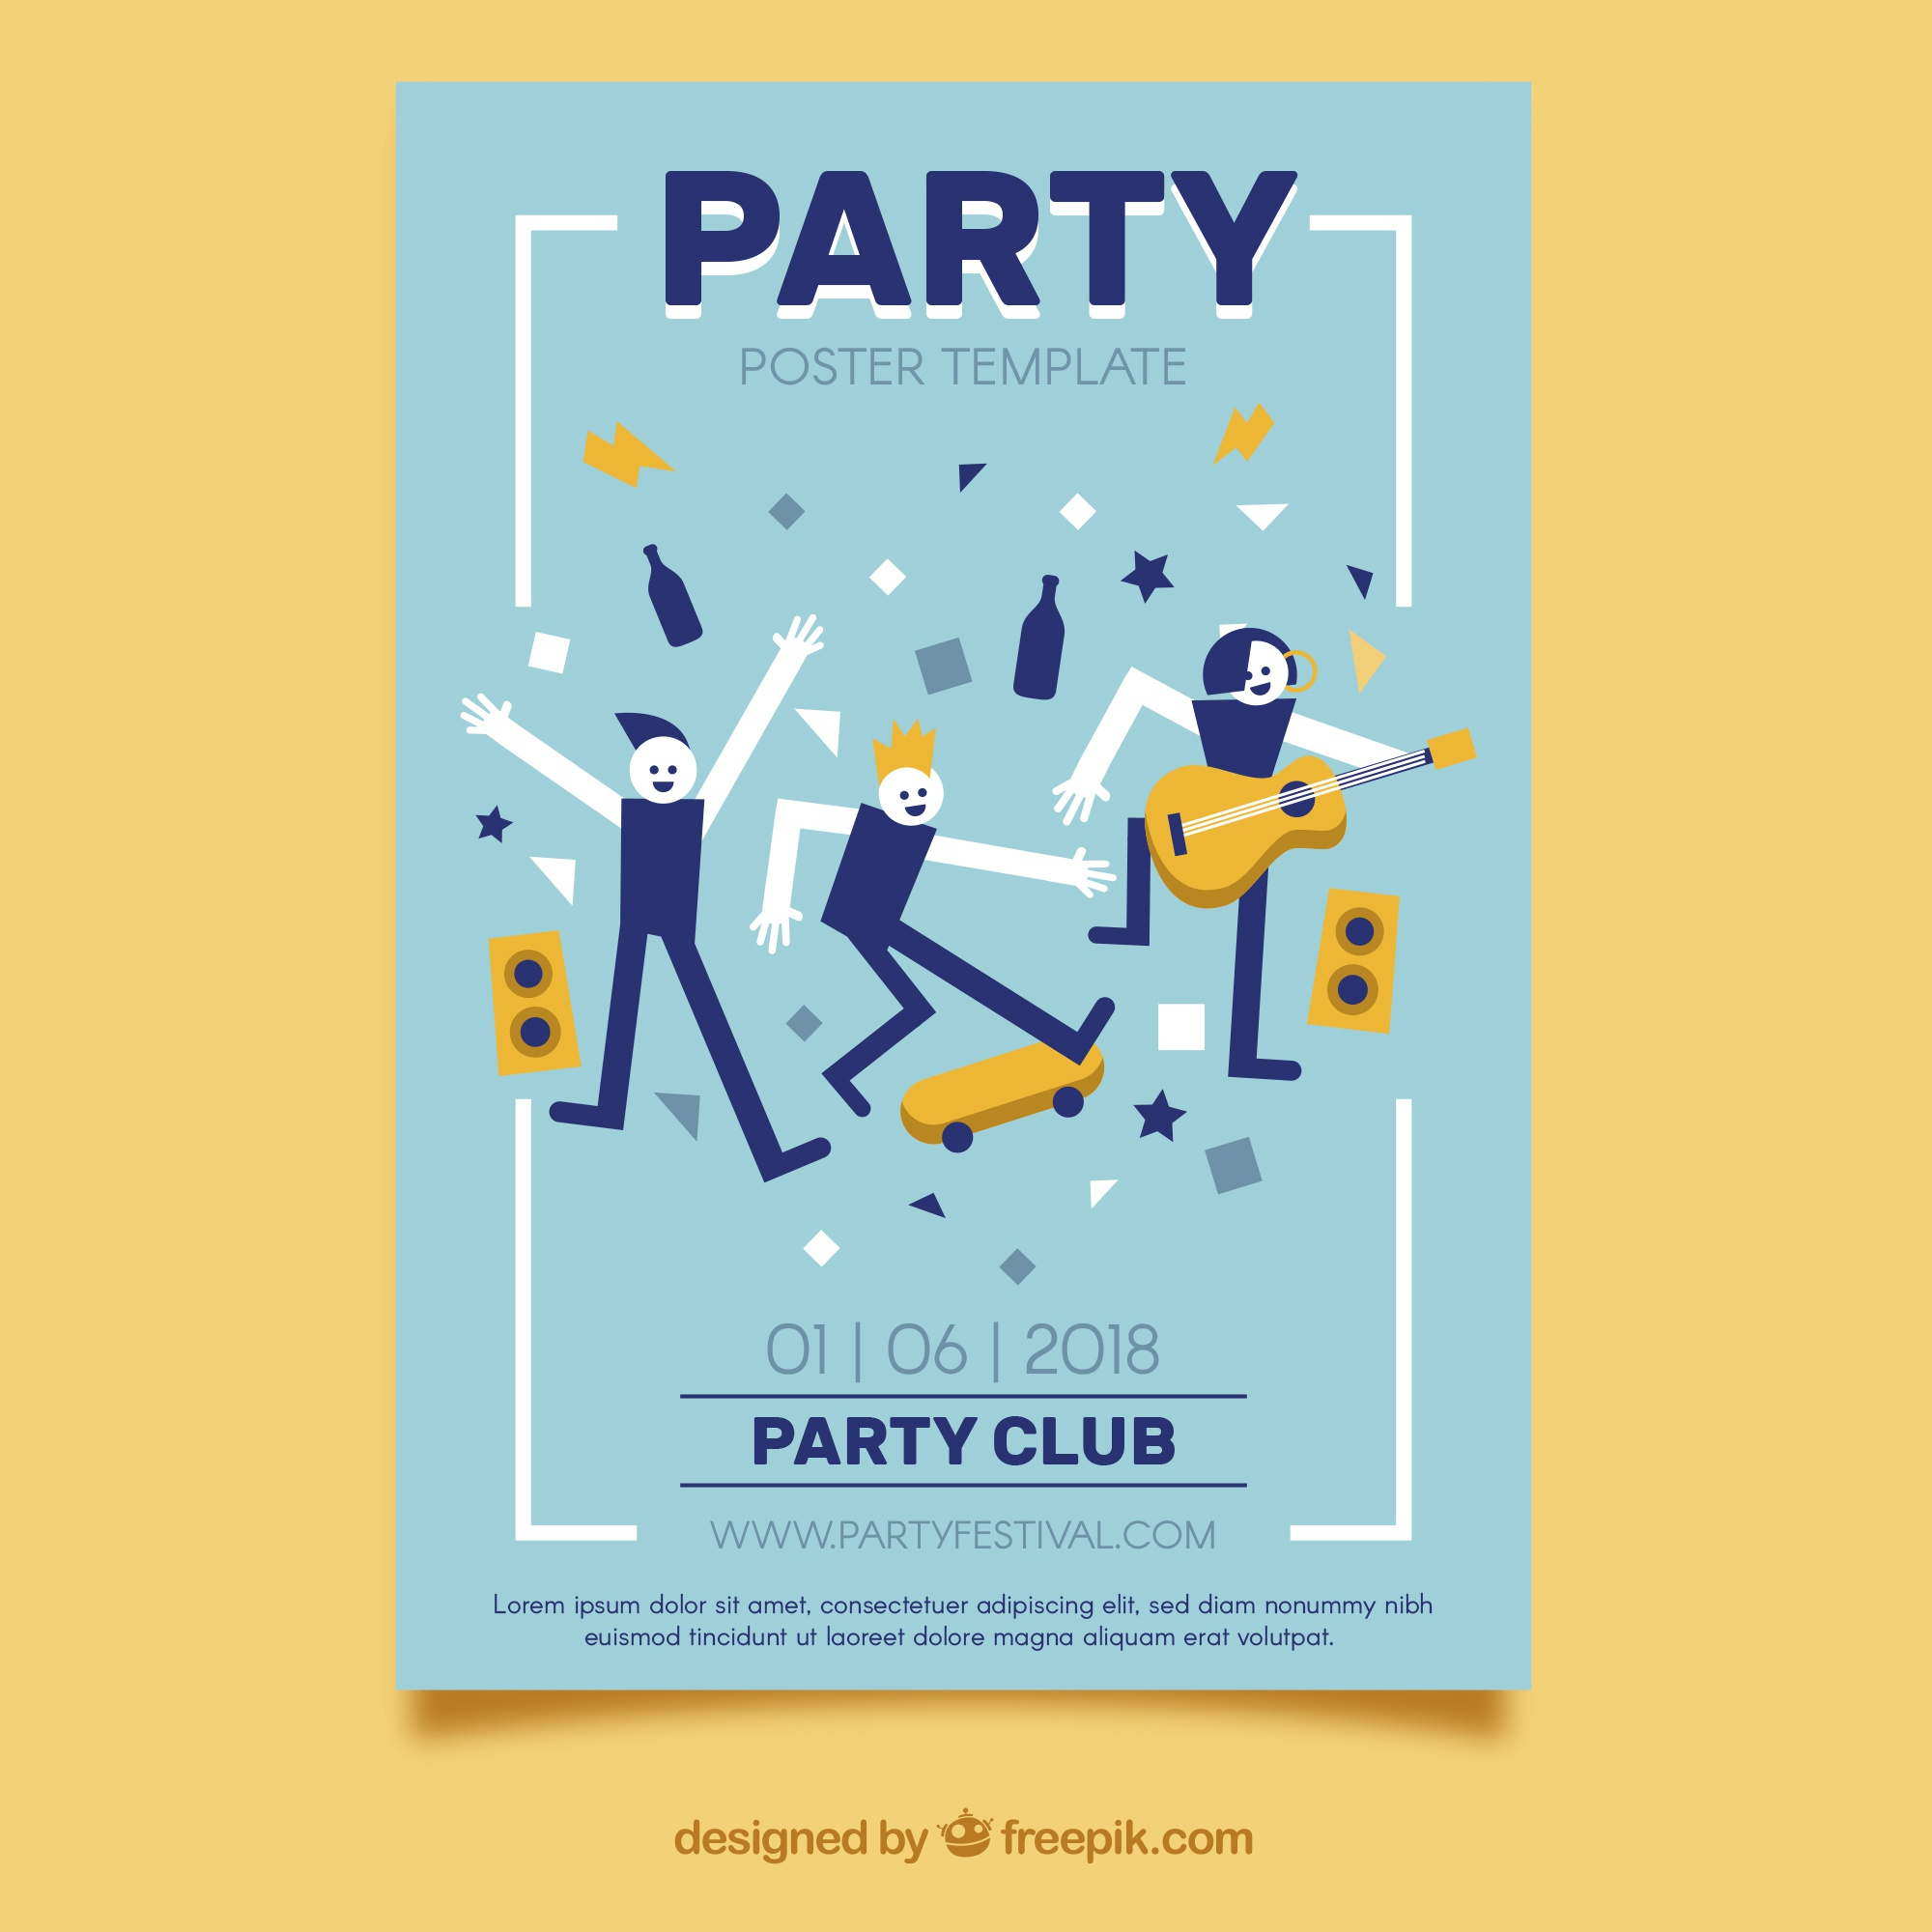 Party poster with people dancing